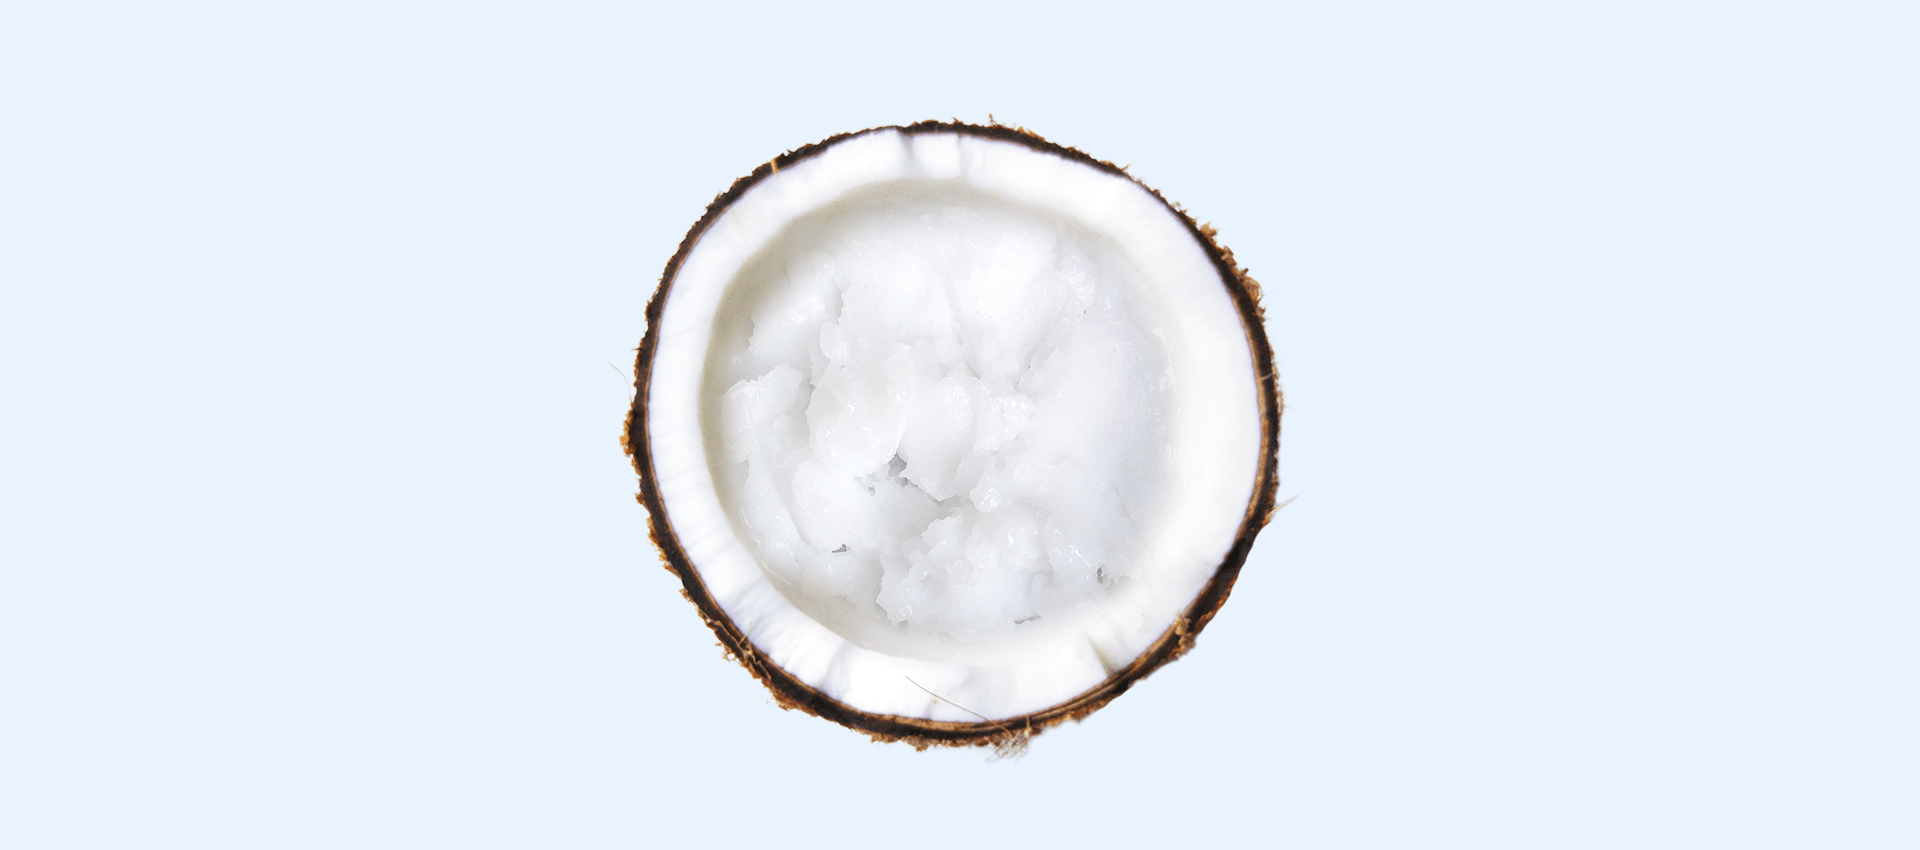 Cooking with coconut oil – the health benefits explained